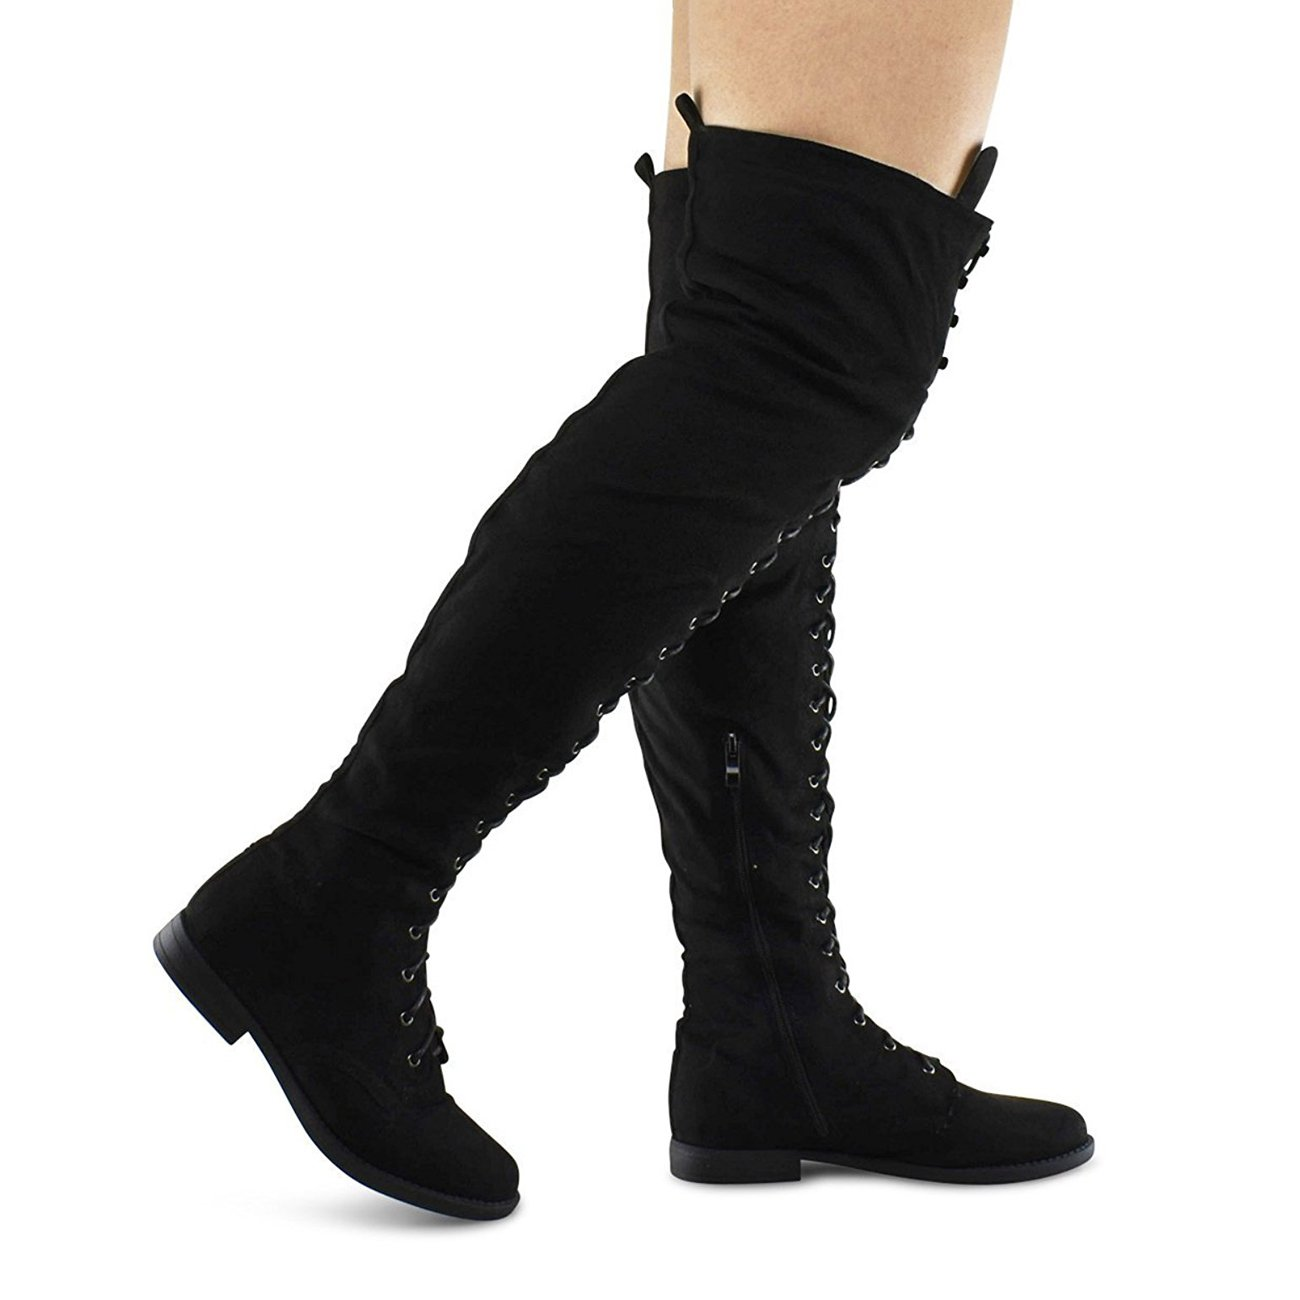 Premier Standard Women's Lace Thigh High Over The Knee Riding Boots - Side Zipper Comfy Vegan Suede B0758Z9K1D 7.5 B(M) US|Black